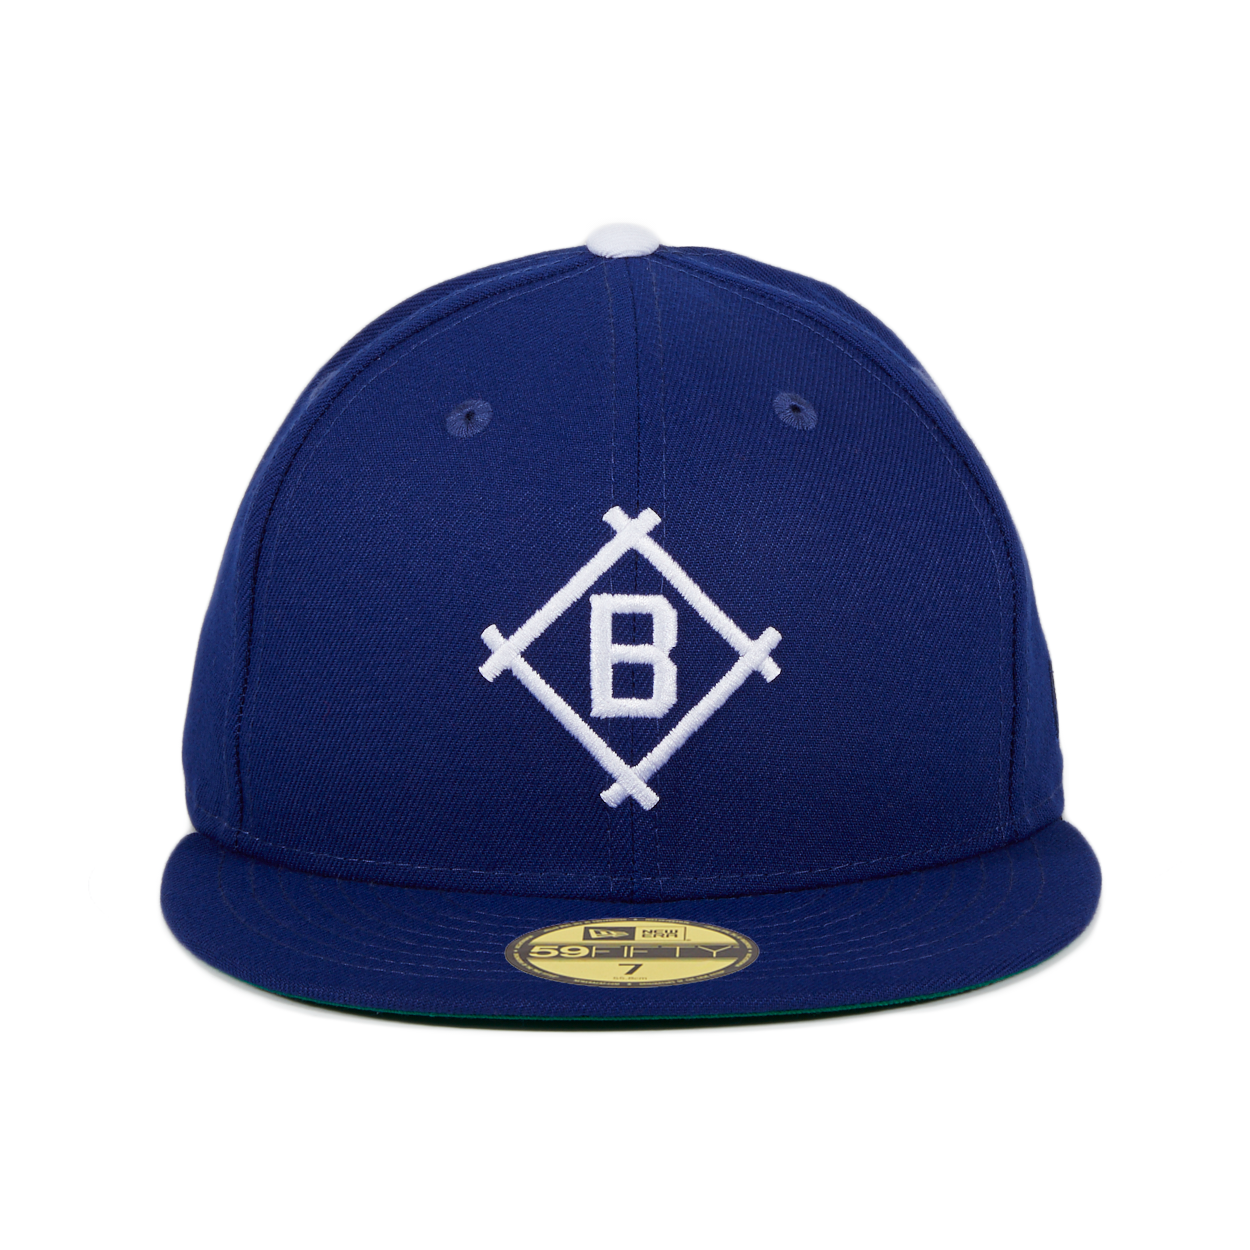 40de87baa2b ... cooperstown fitted hat ca91b d3224  spain exclusive new era 59fifty  brooklyn dodgers 1912 hat royal hat club a97f0 64ba7